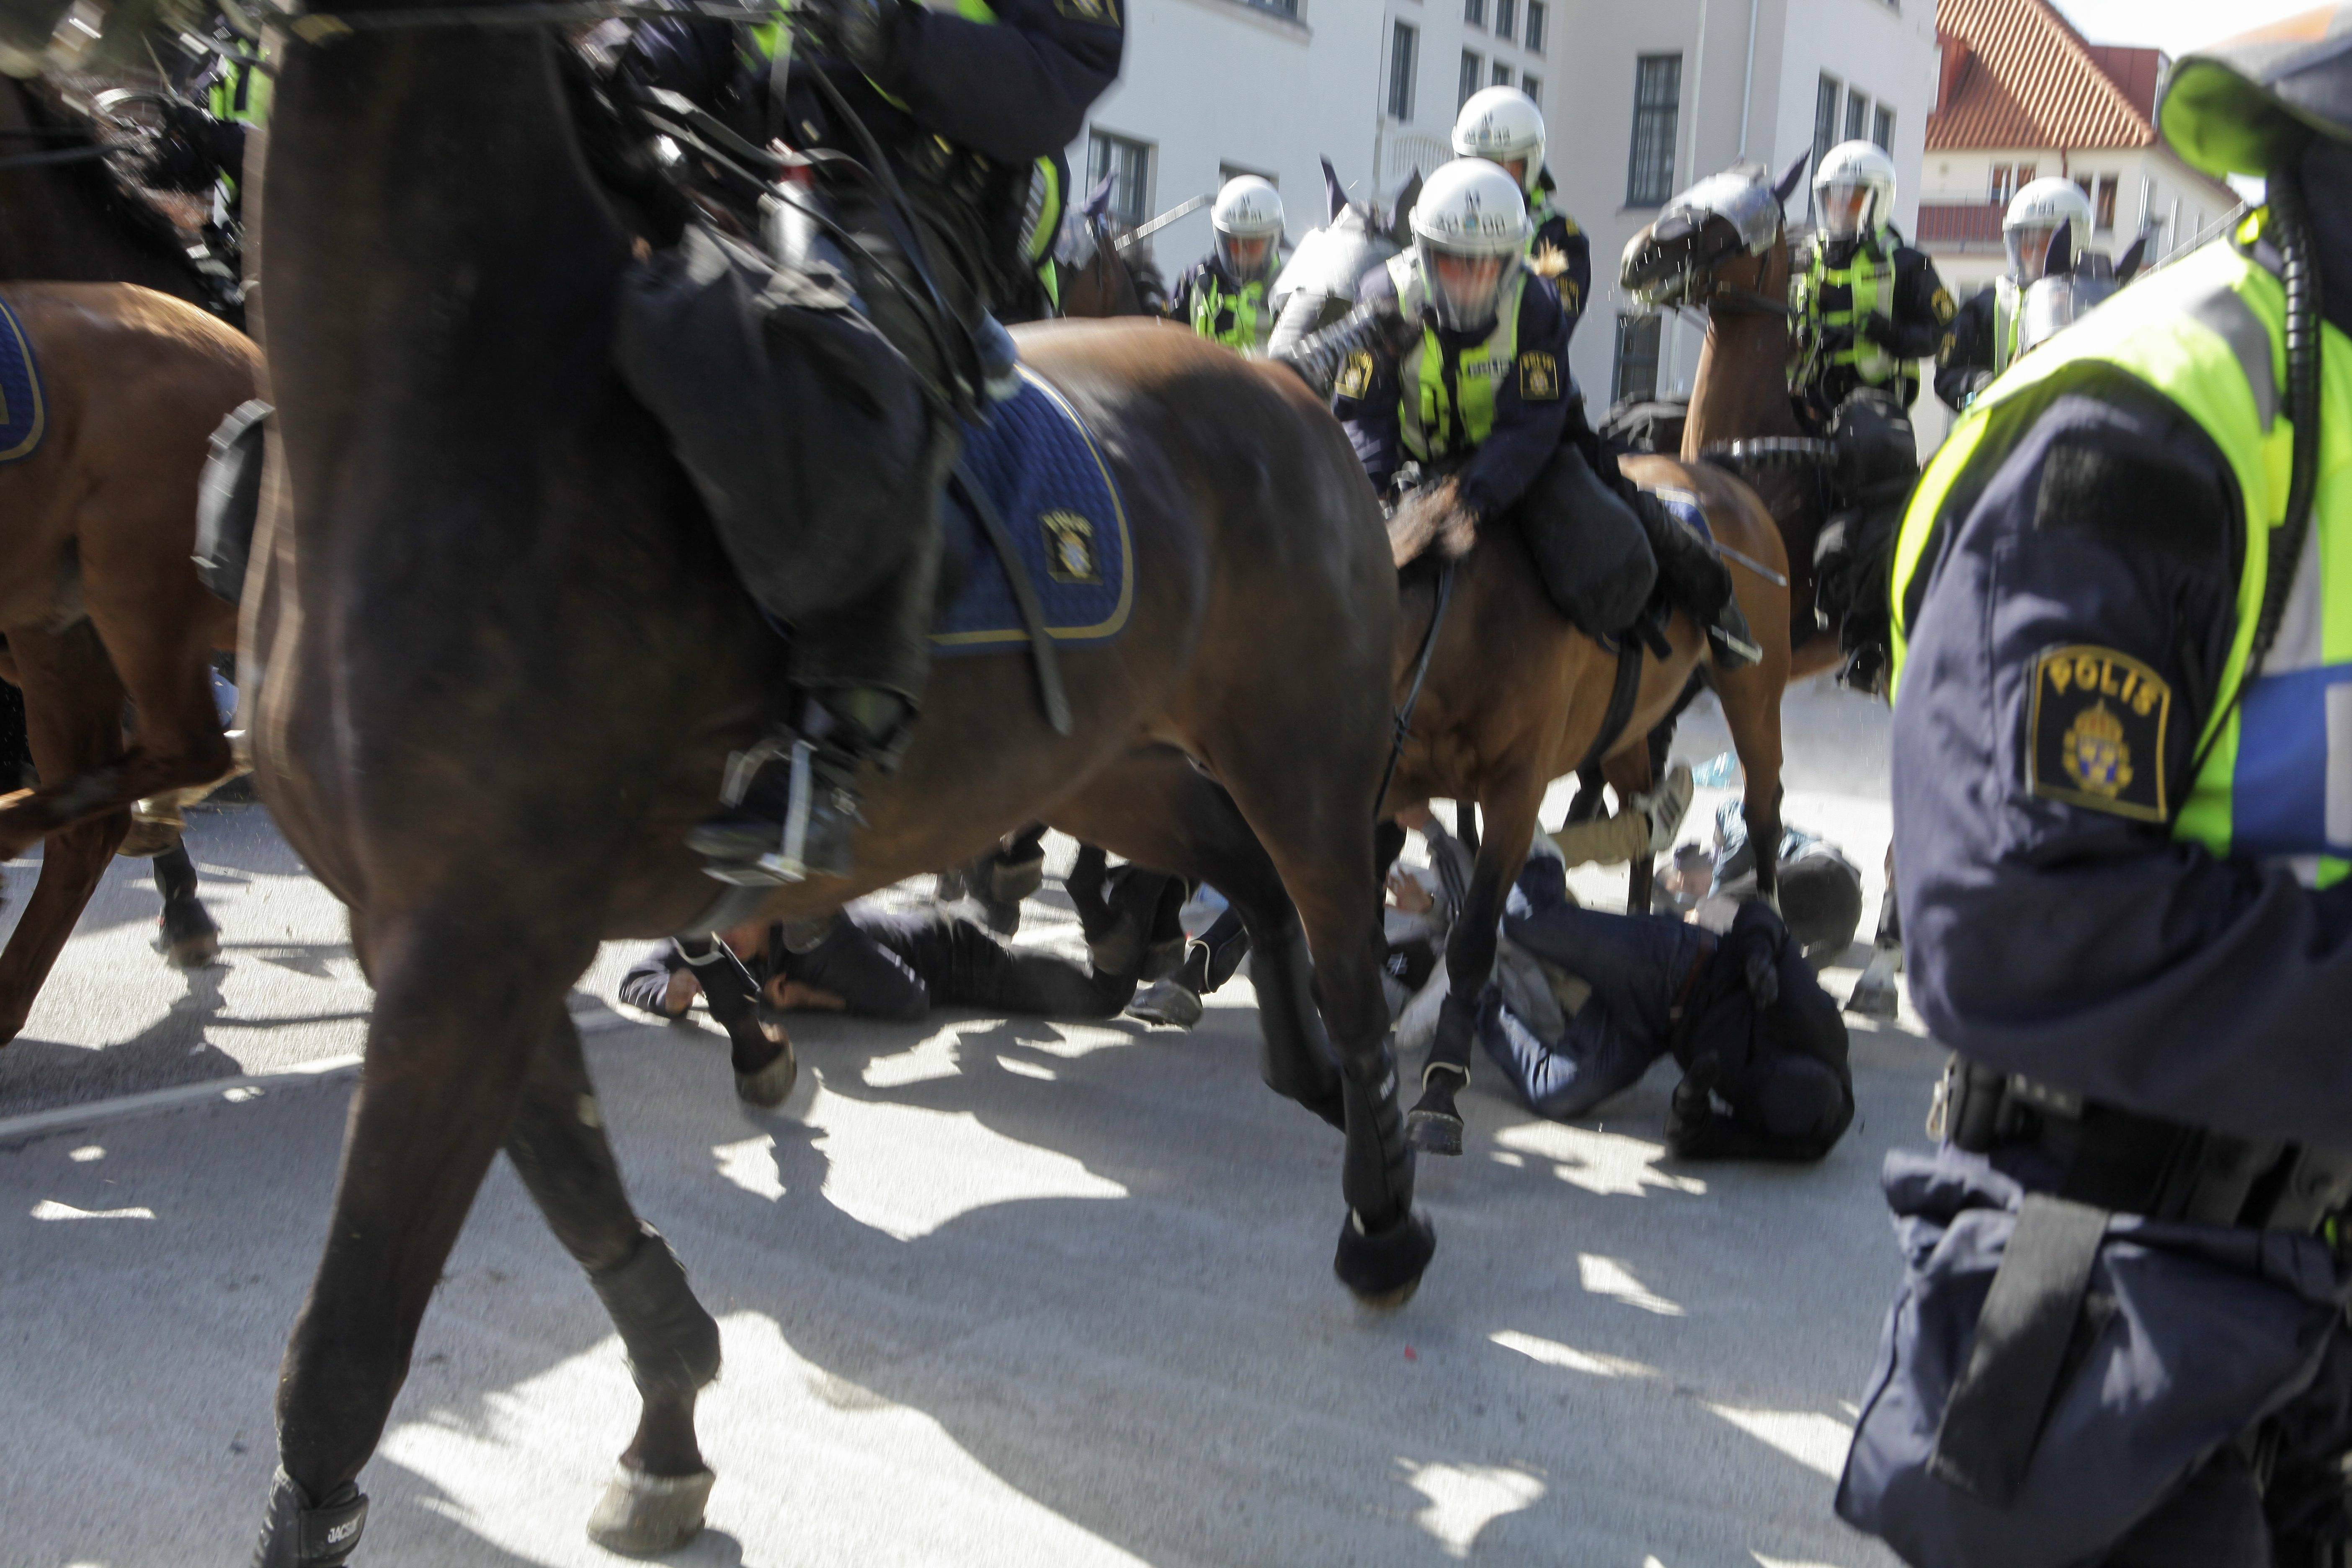 "Police mounted on horses ride Saturday through counter-demonstrators protesting against an election meeting arranged by the neo-nazi party ""Svenskarnas Parti"", at a square in central Malmo, Sweden."